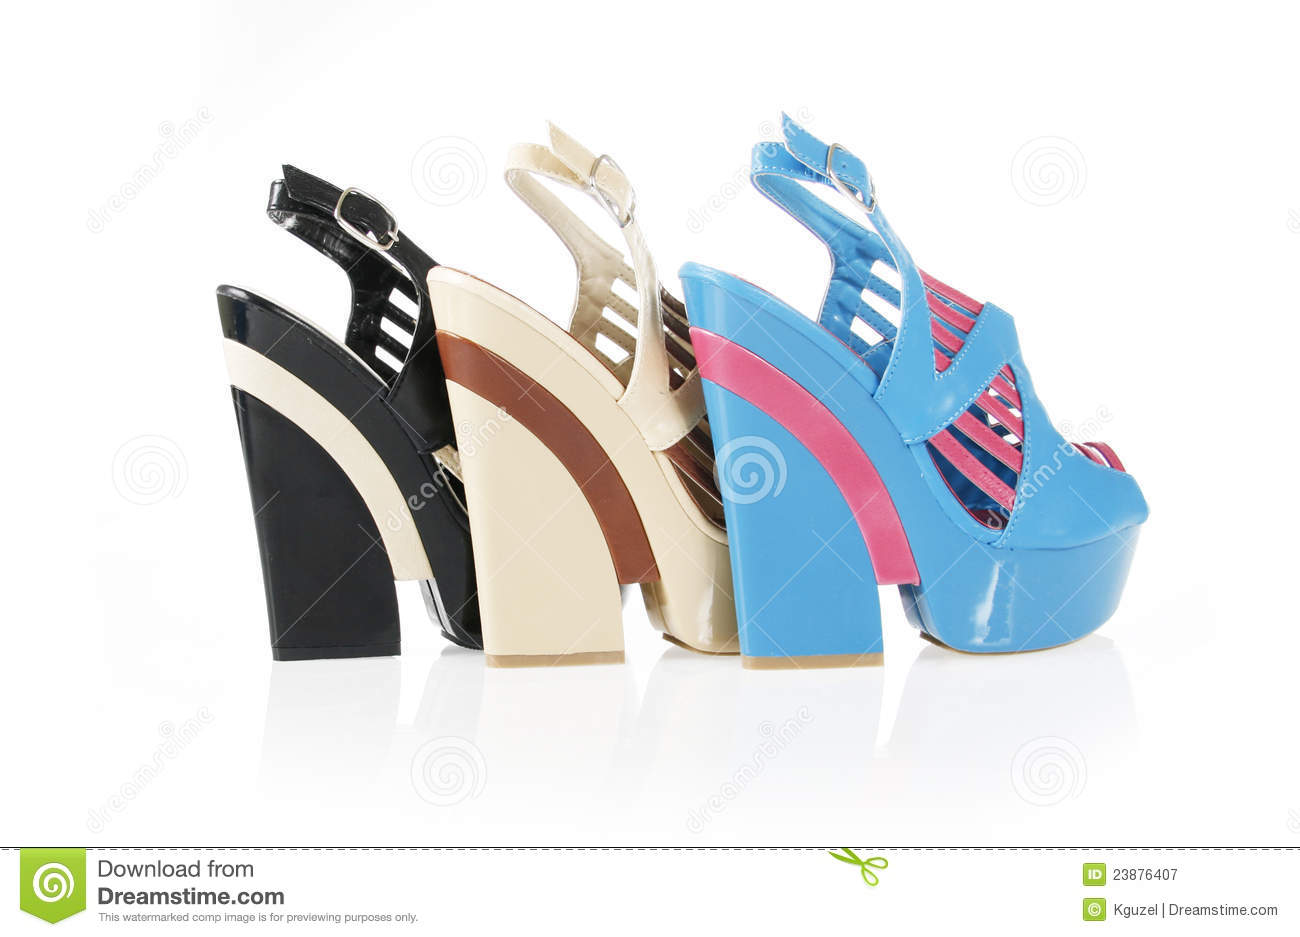 Beautiful wedge shoes collections